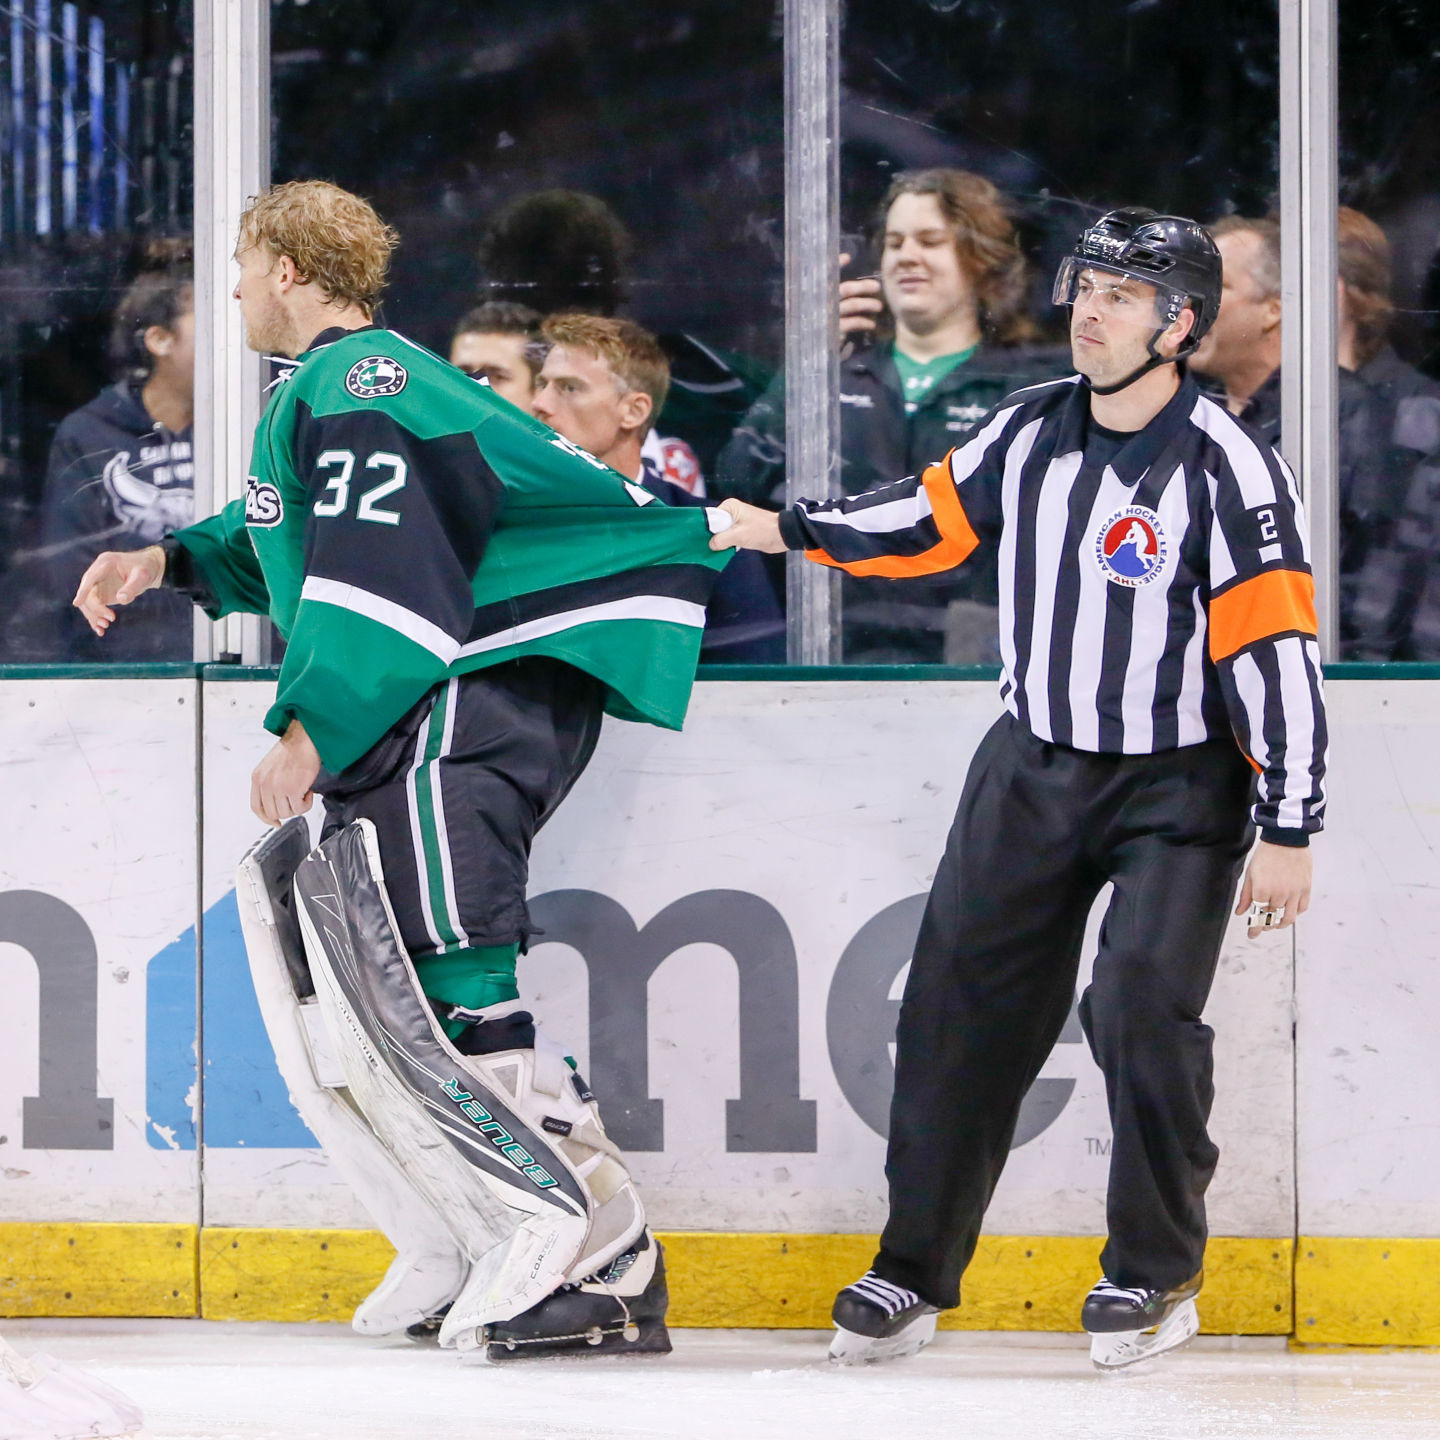 Justin Peters went the length of the ice and nearly got in a goalie fight with the San Antonio goalie in Texas' 6-3 loss to the Rampage in the season finale Saturday night.